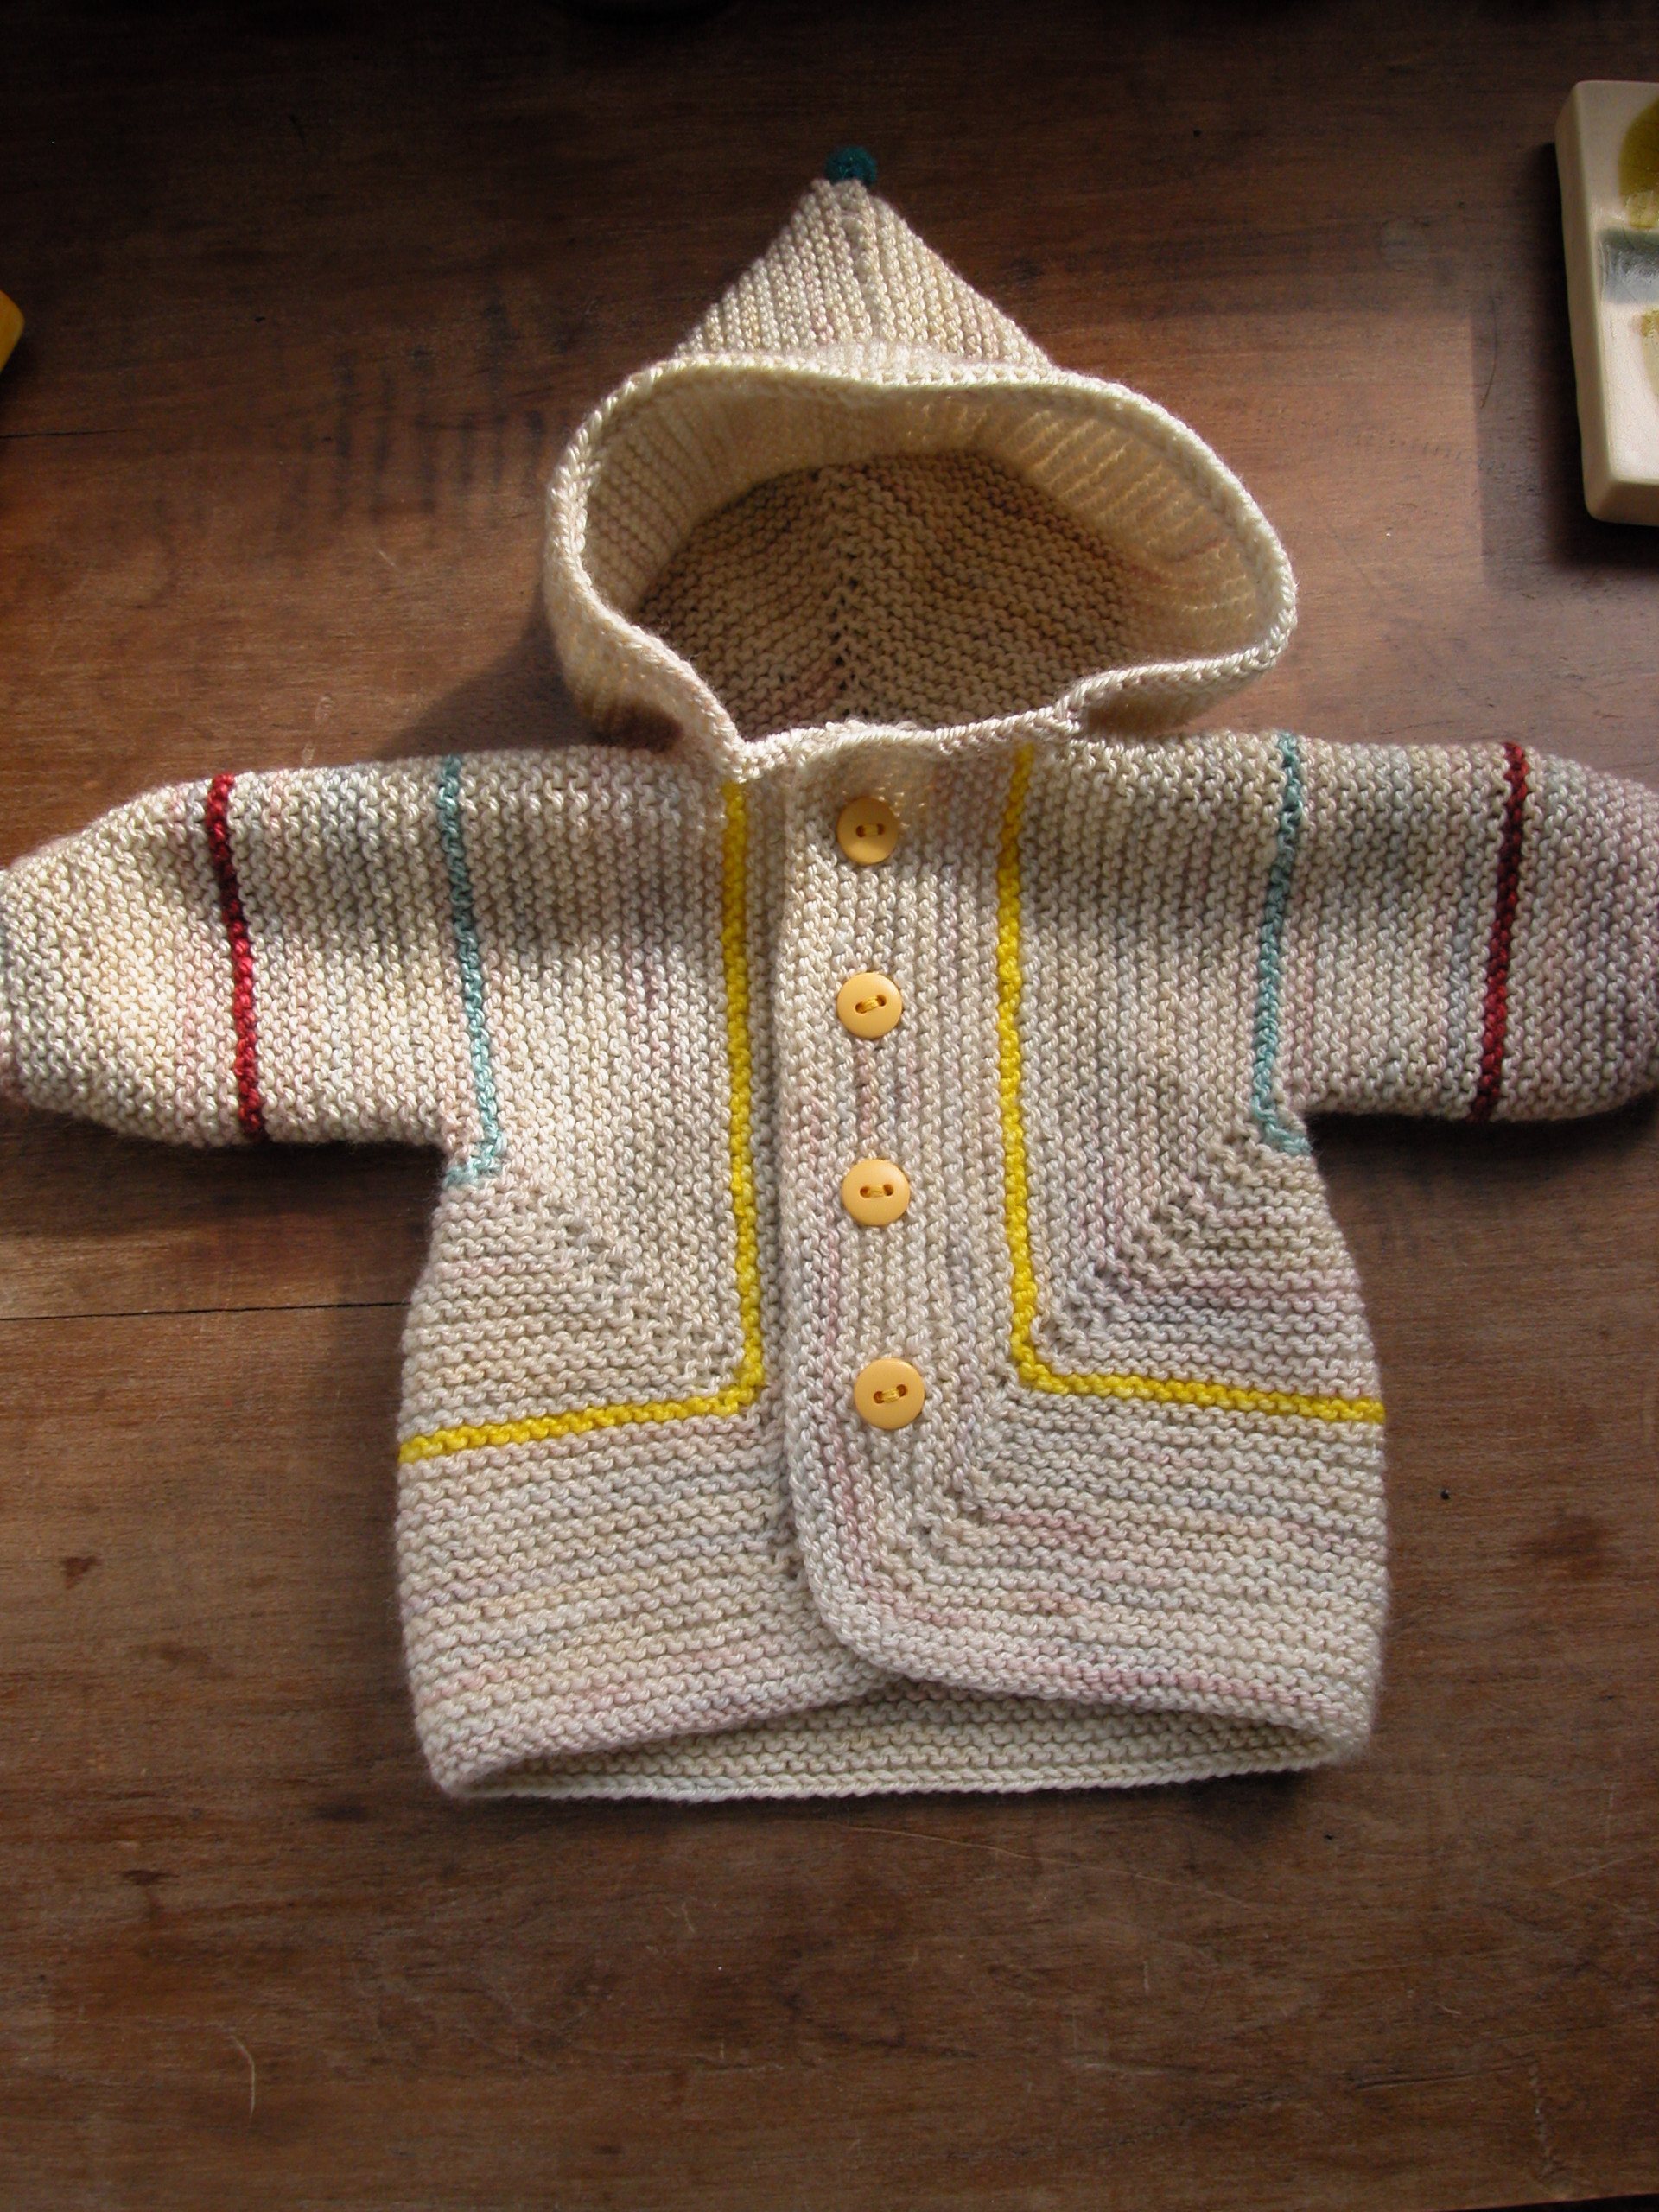 Crochet Surprise Jacket Free Pattern : baby surprise sweater the knit cafe